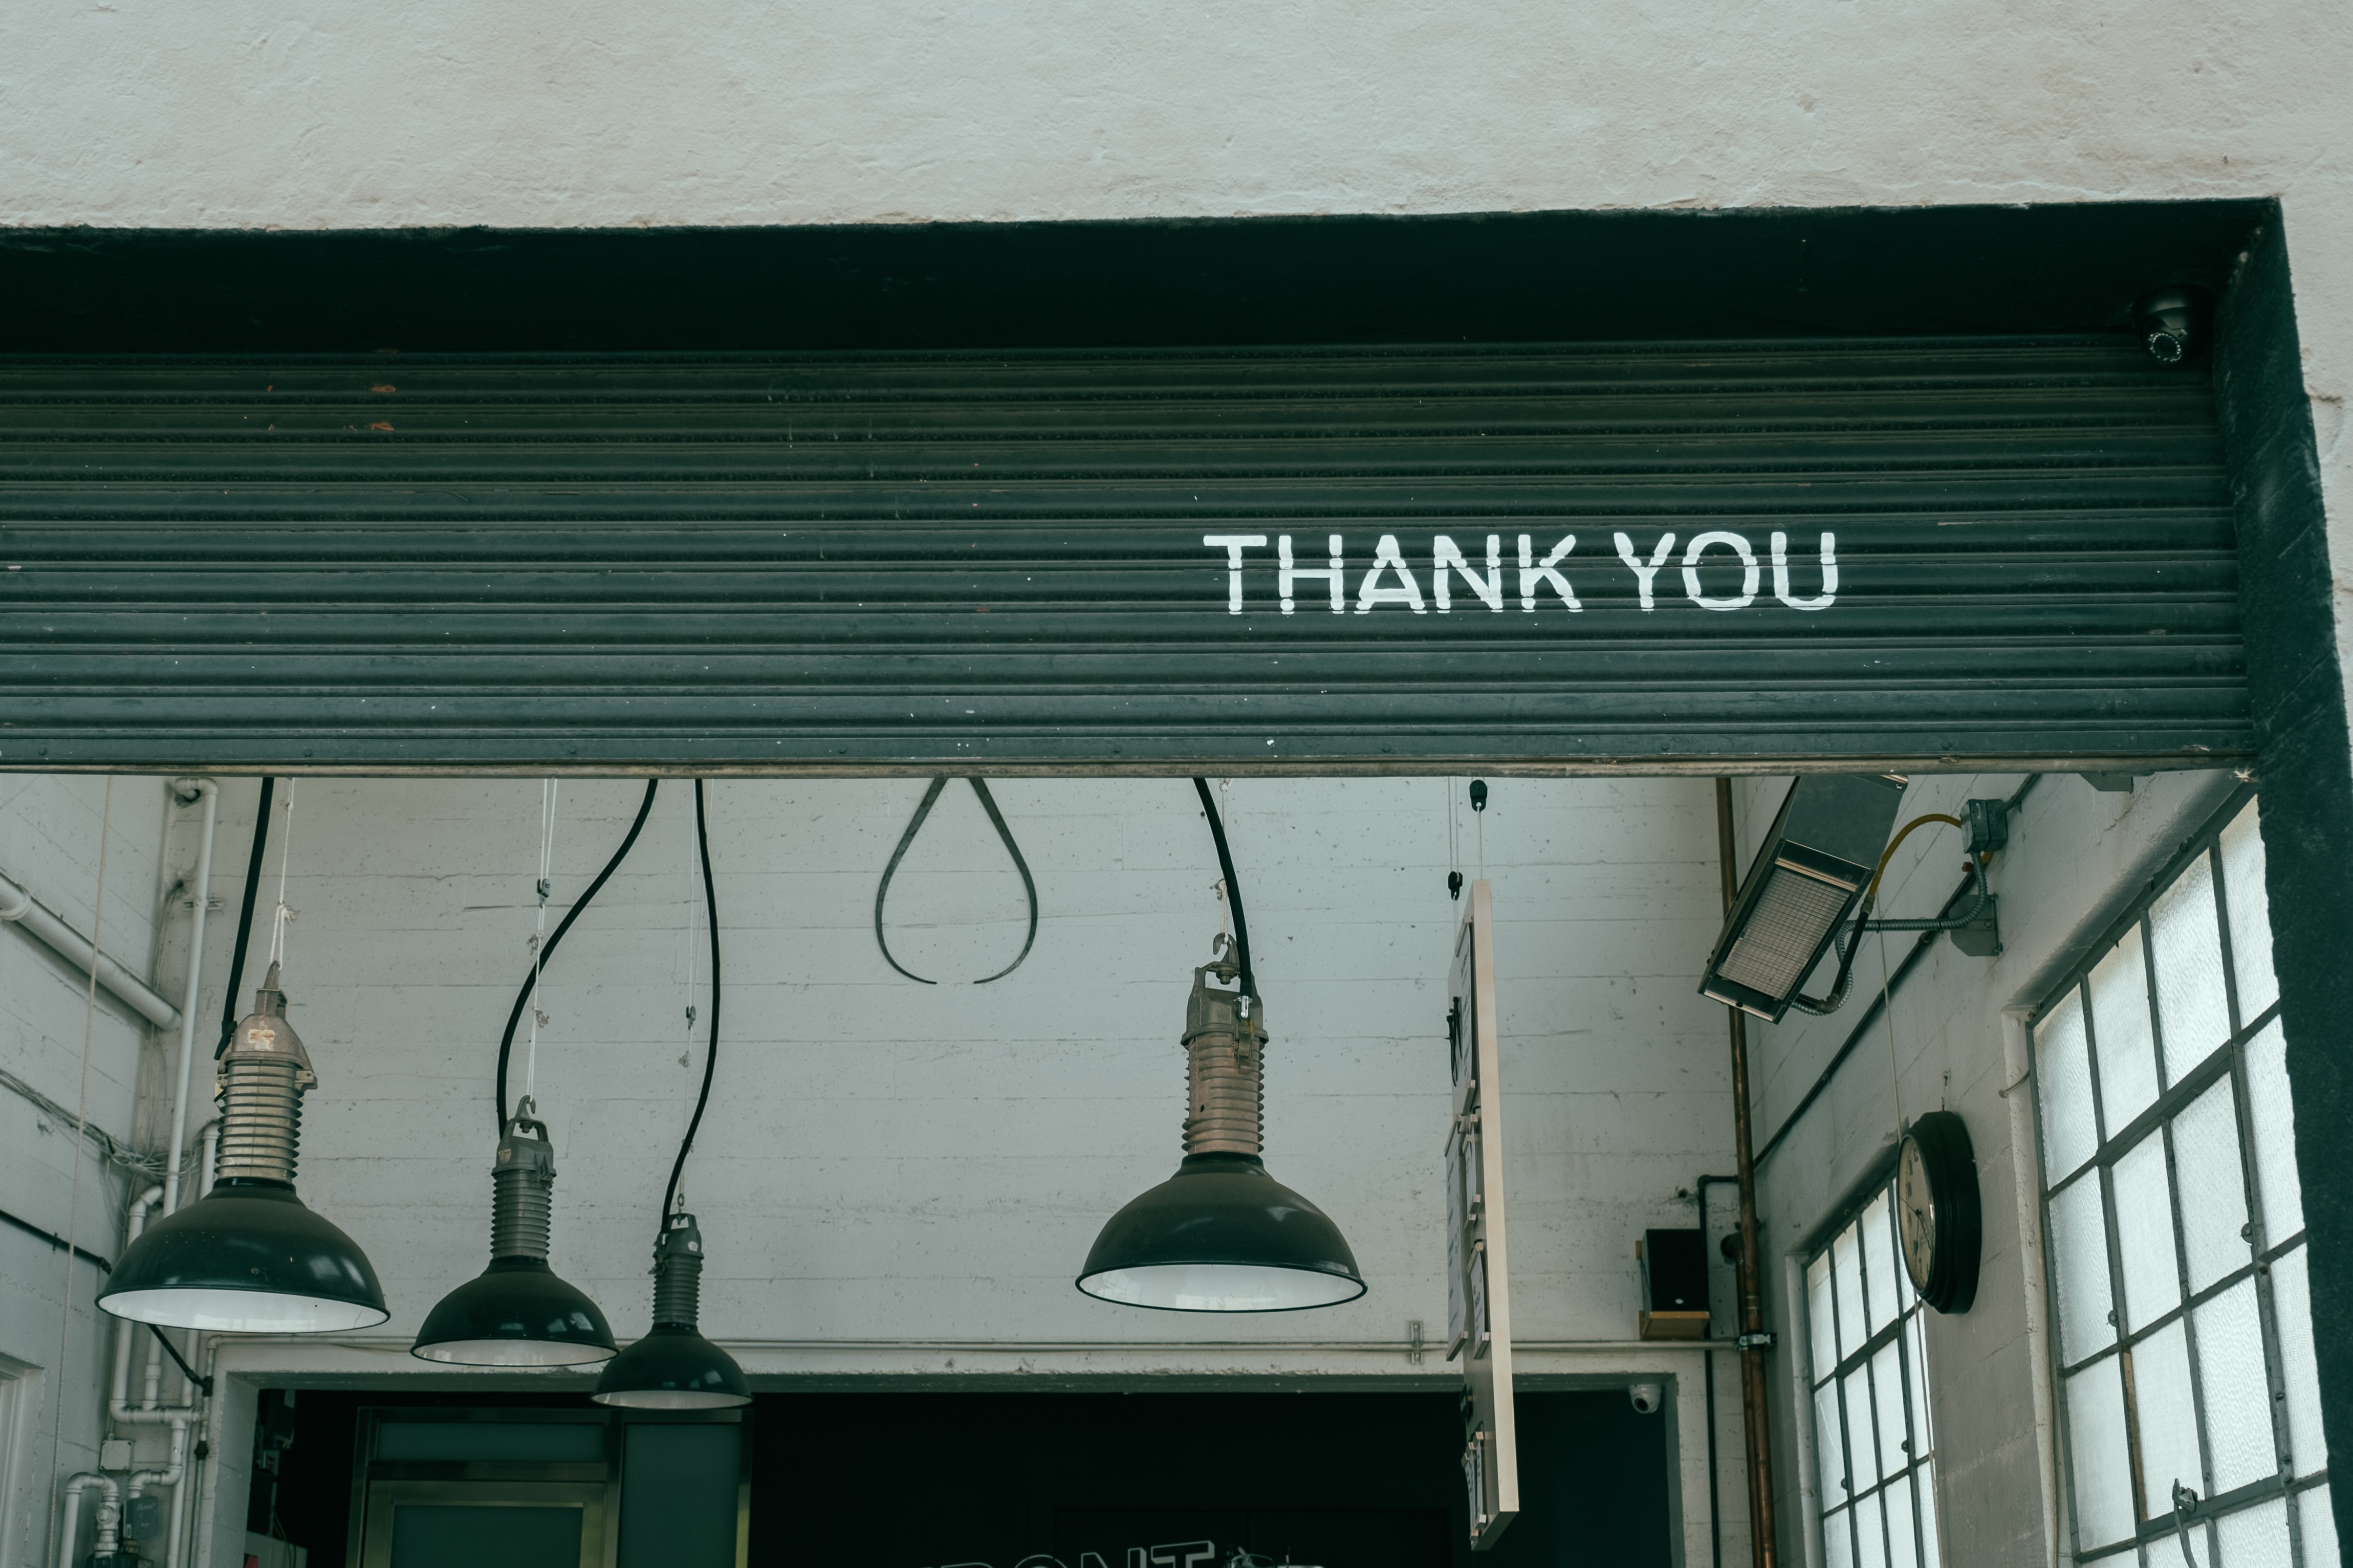 """""""Thank you"""" written on a roll-up wall in an industrial building"""